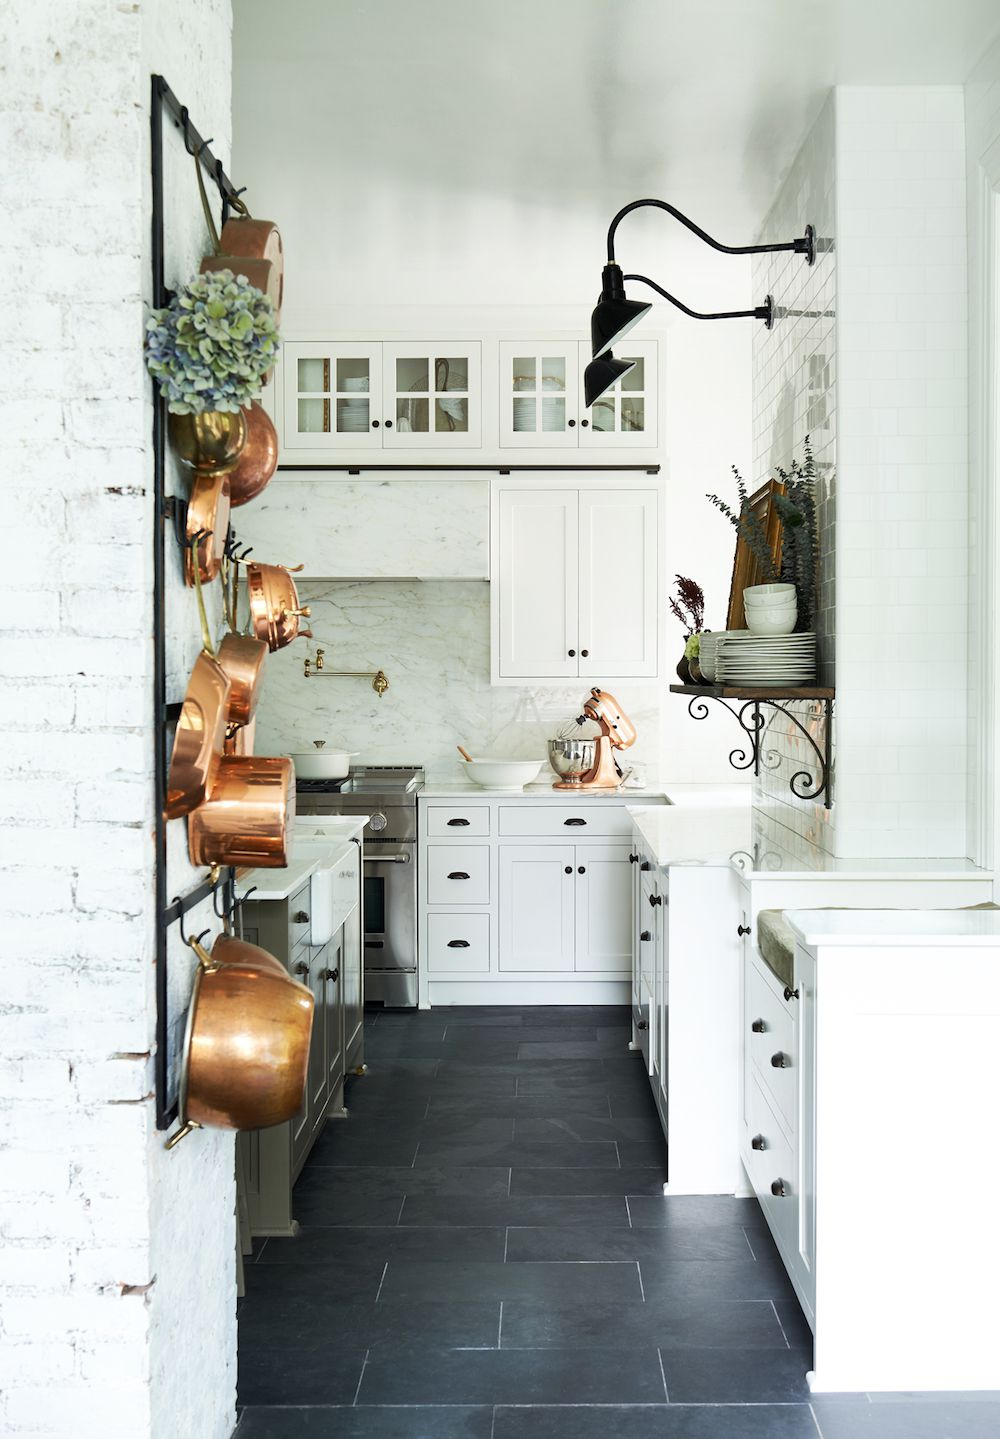 Newest Casual Country Eat Here Retro Wall Decor in 13 Chic French-Country Kitchens - Farmhouse Kitchen Style Inspiration